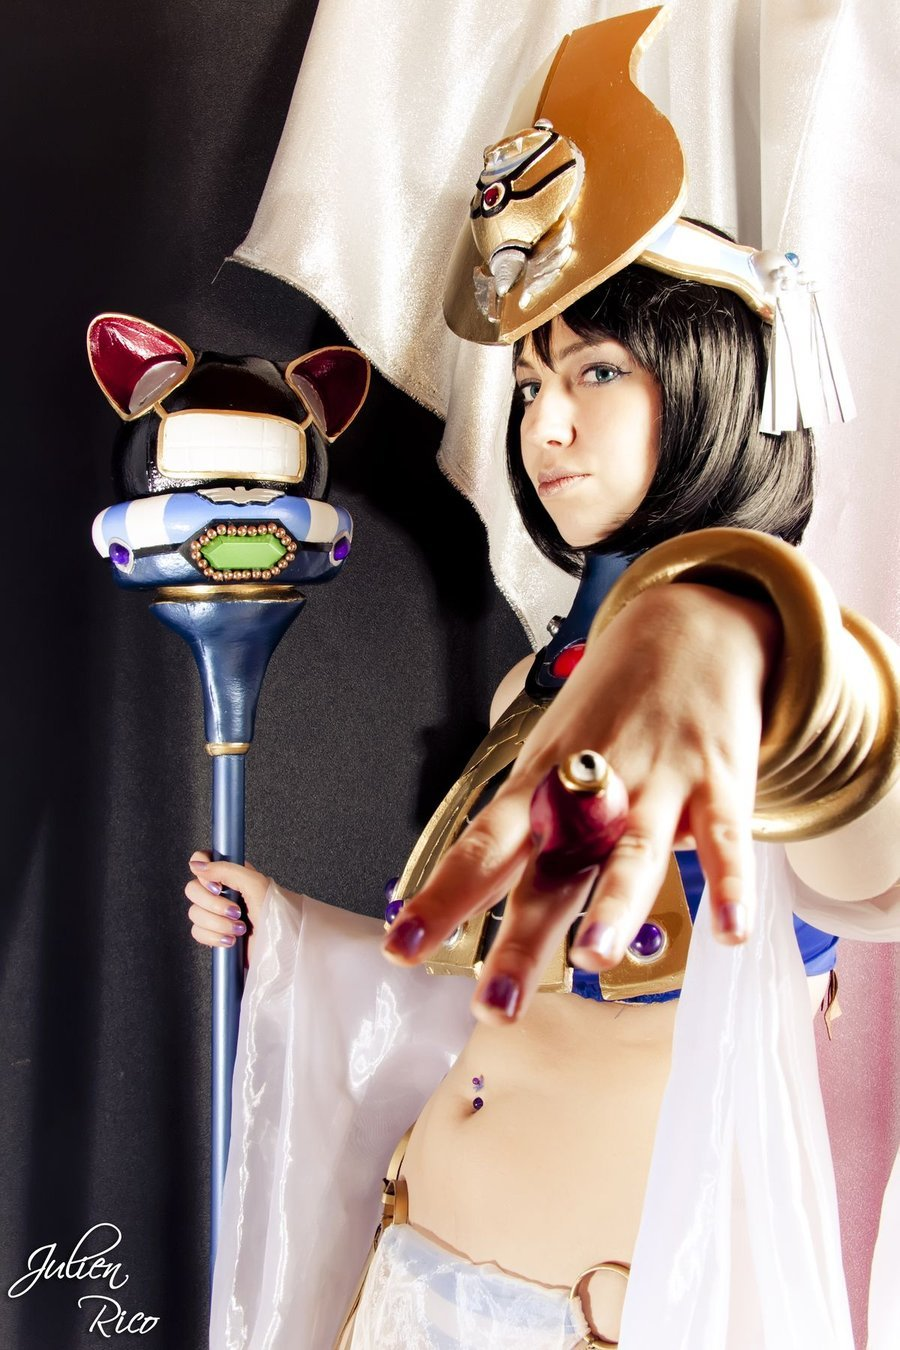 Menace queens blade 5 by Shoko Cosplay 900x1350